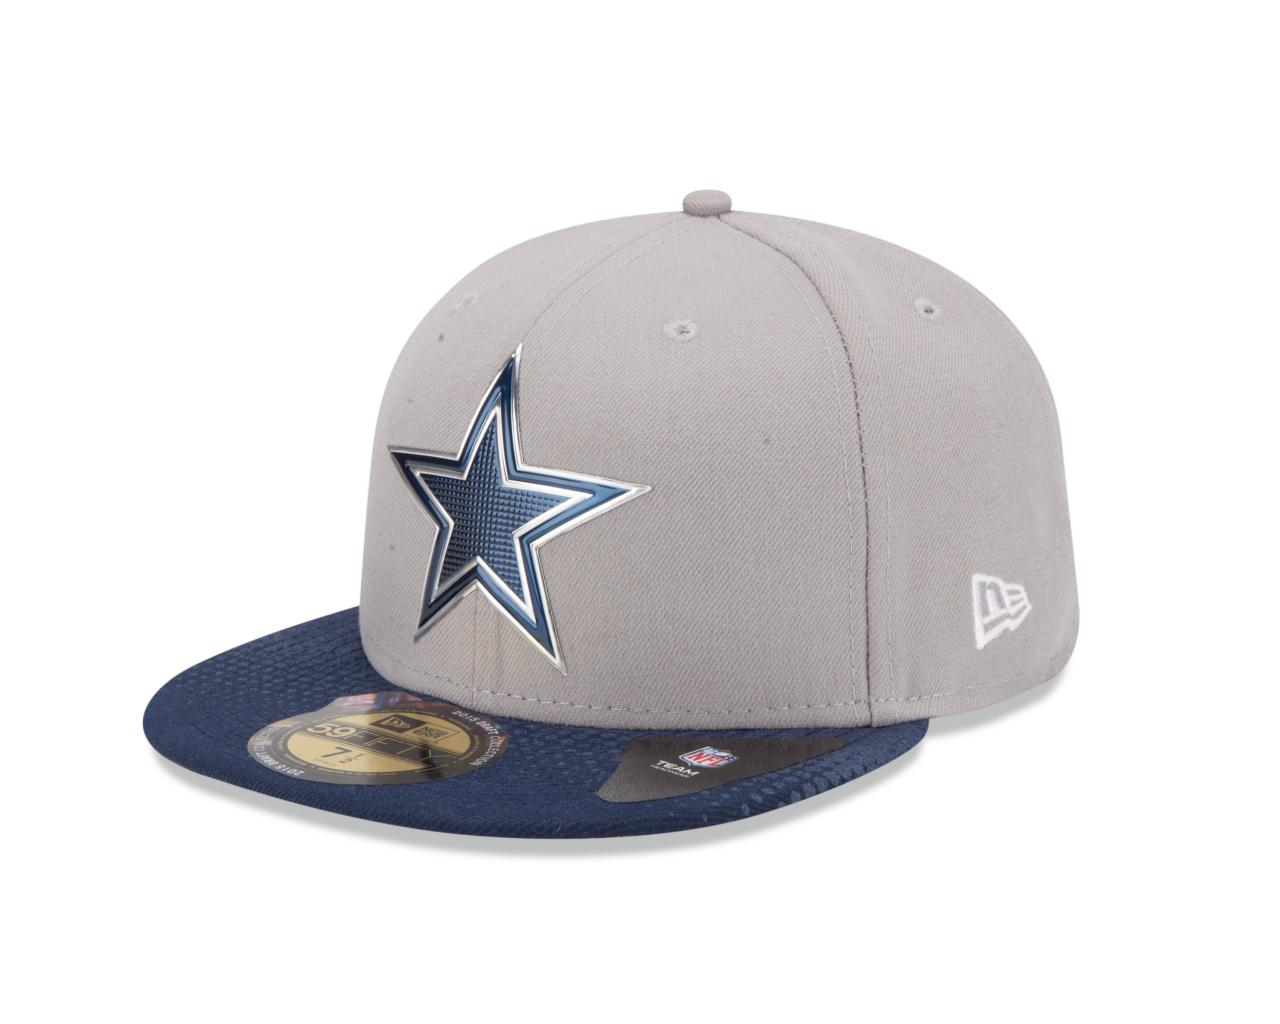 Dallas Cowboys NFL On Stage Draft 5950 Gray Fitted Hat (Gray)